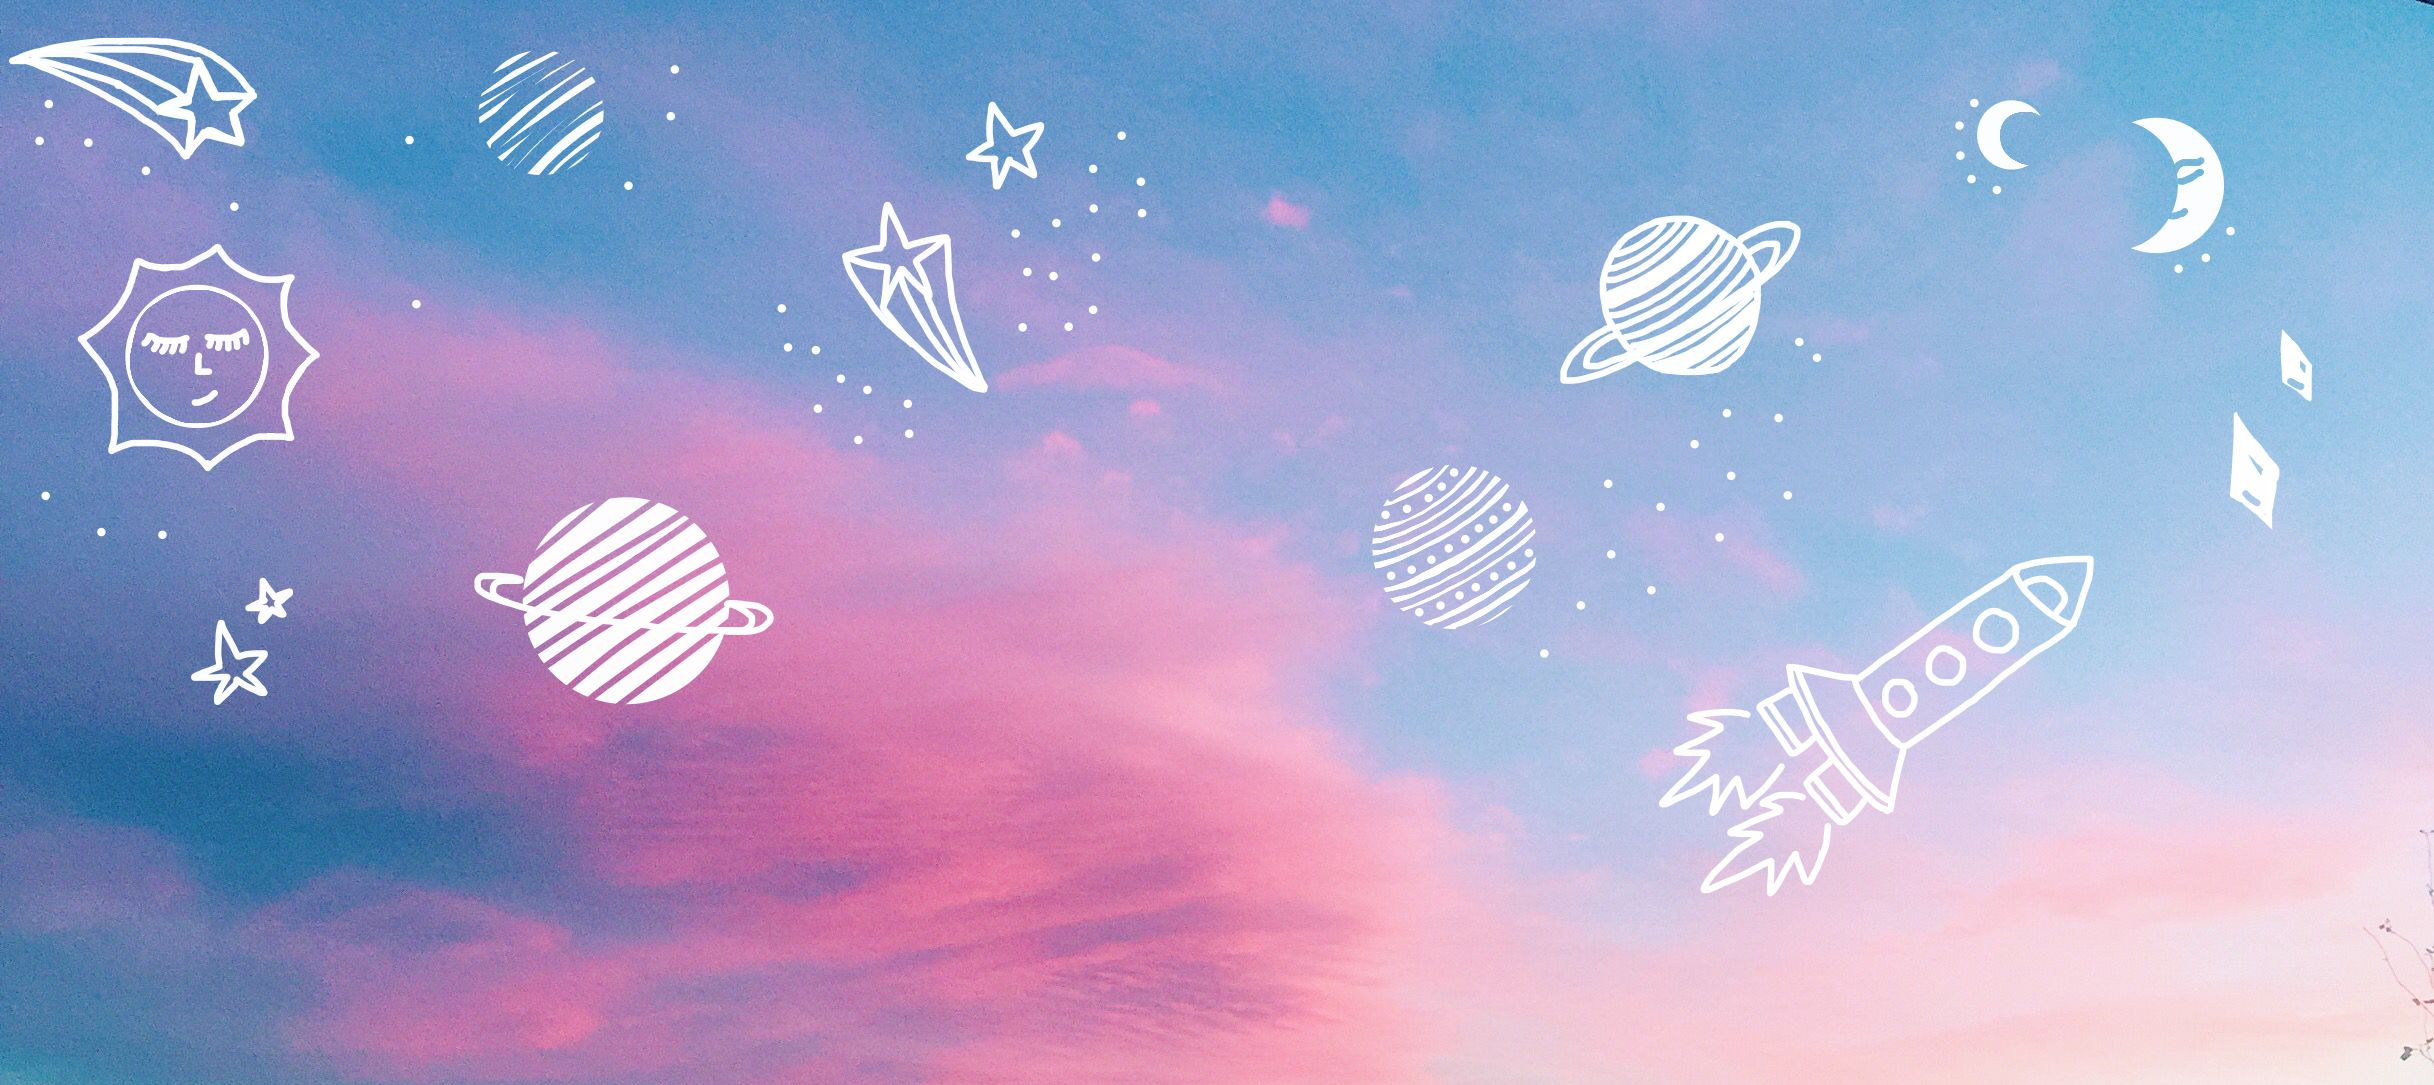 Cotton Candy Clouds Are The Best Aesthetic Desktop Wallpaper Aesthetic Wallpapers Cute Laptop Wallpaper